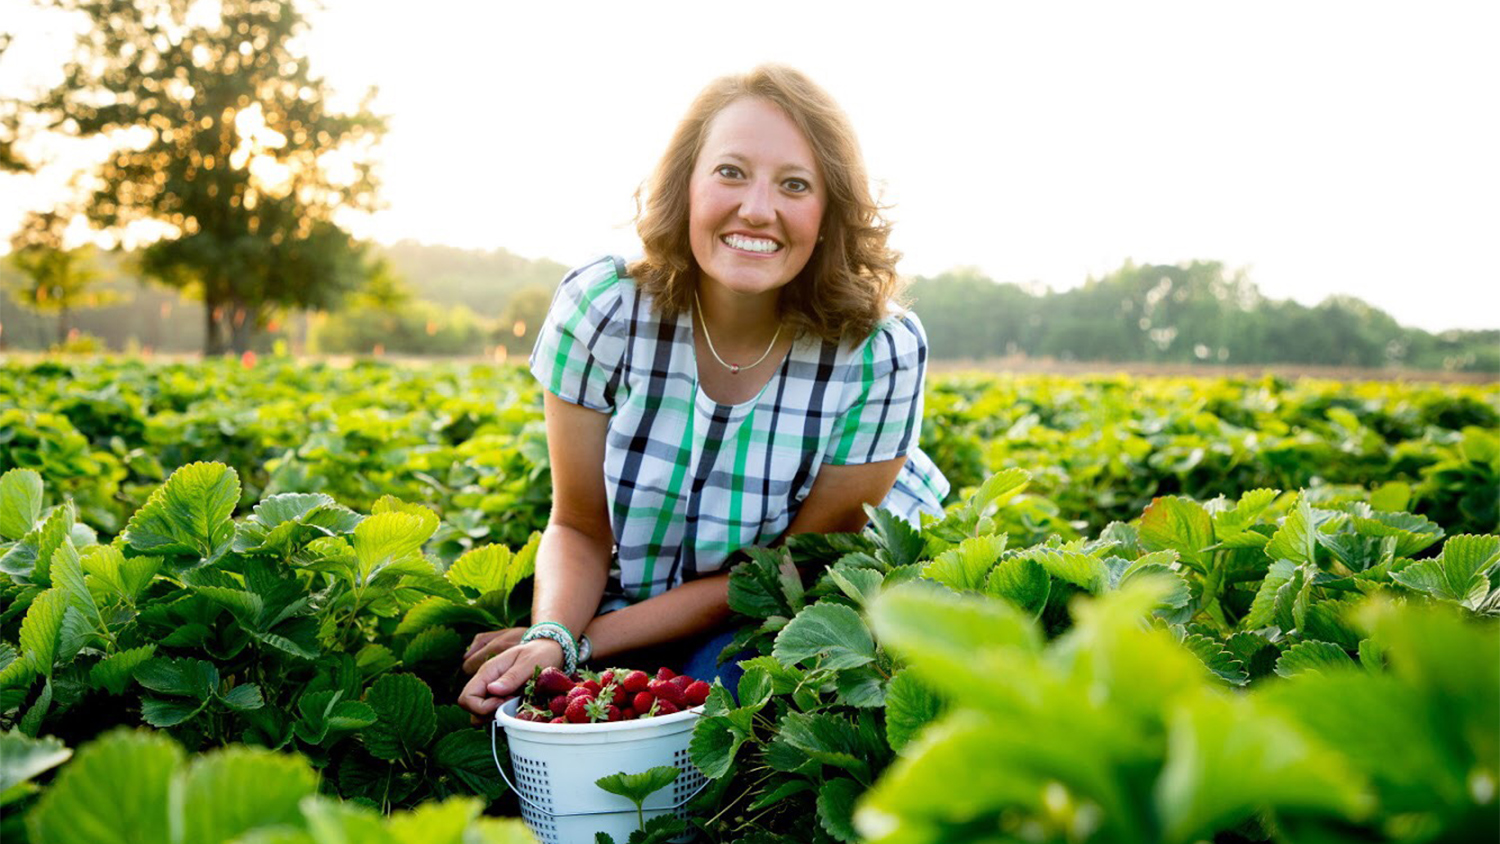 Woman kneeling in strawberry patch